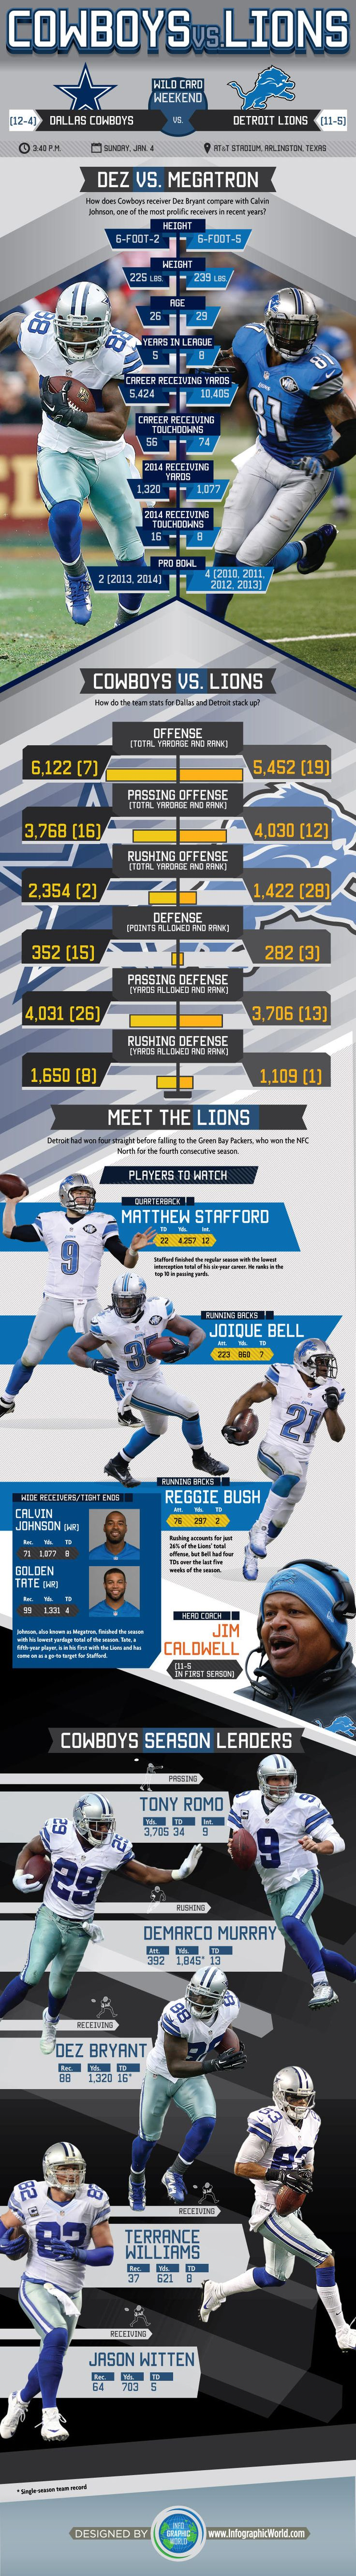 Infographic: Tale of the Tape Comparison For MegaTron vs. Dez Matchup; Team Leaders | Dallas Cowboys